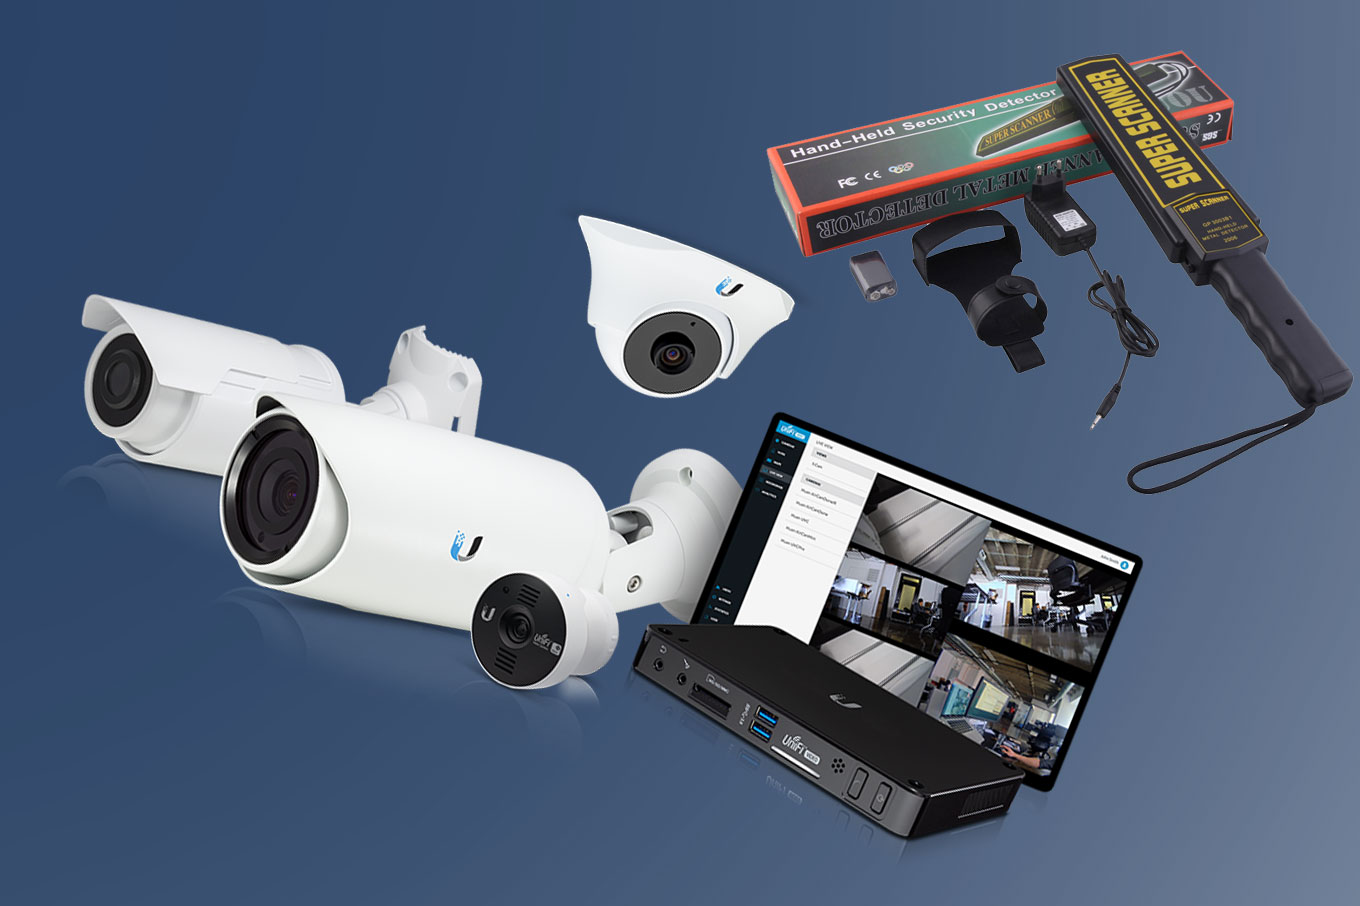 Electronic Security System Design